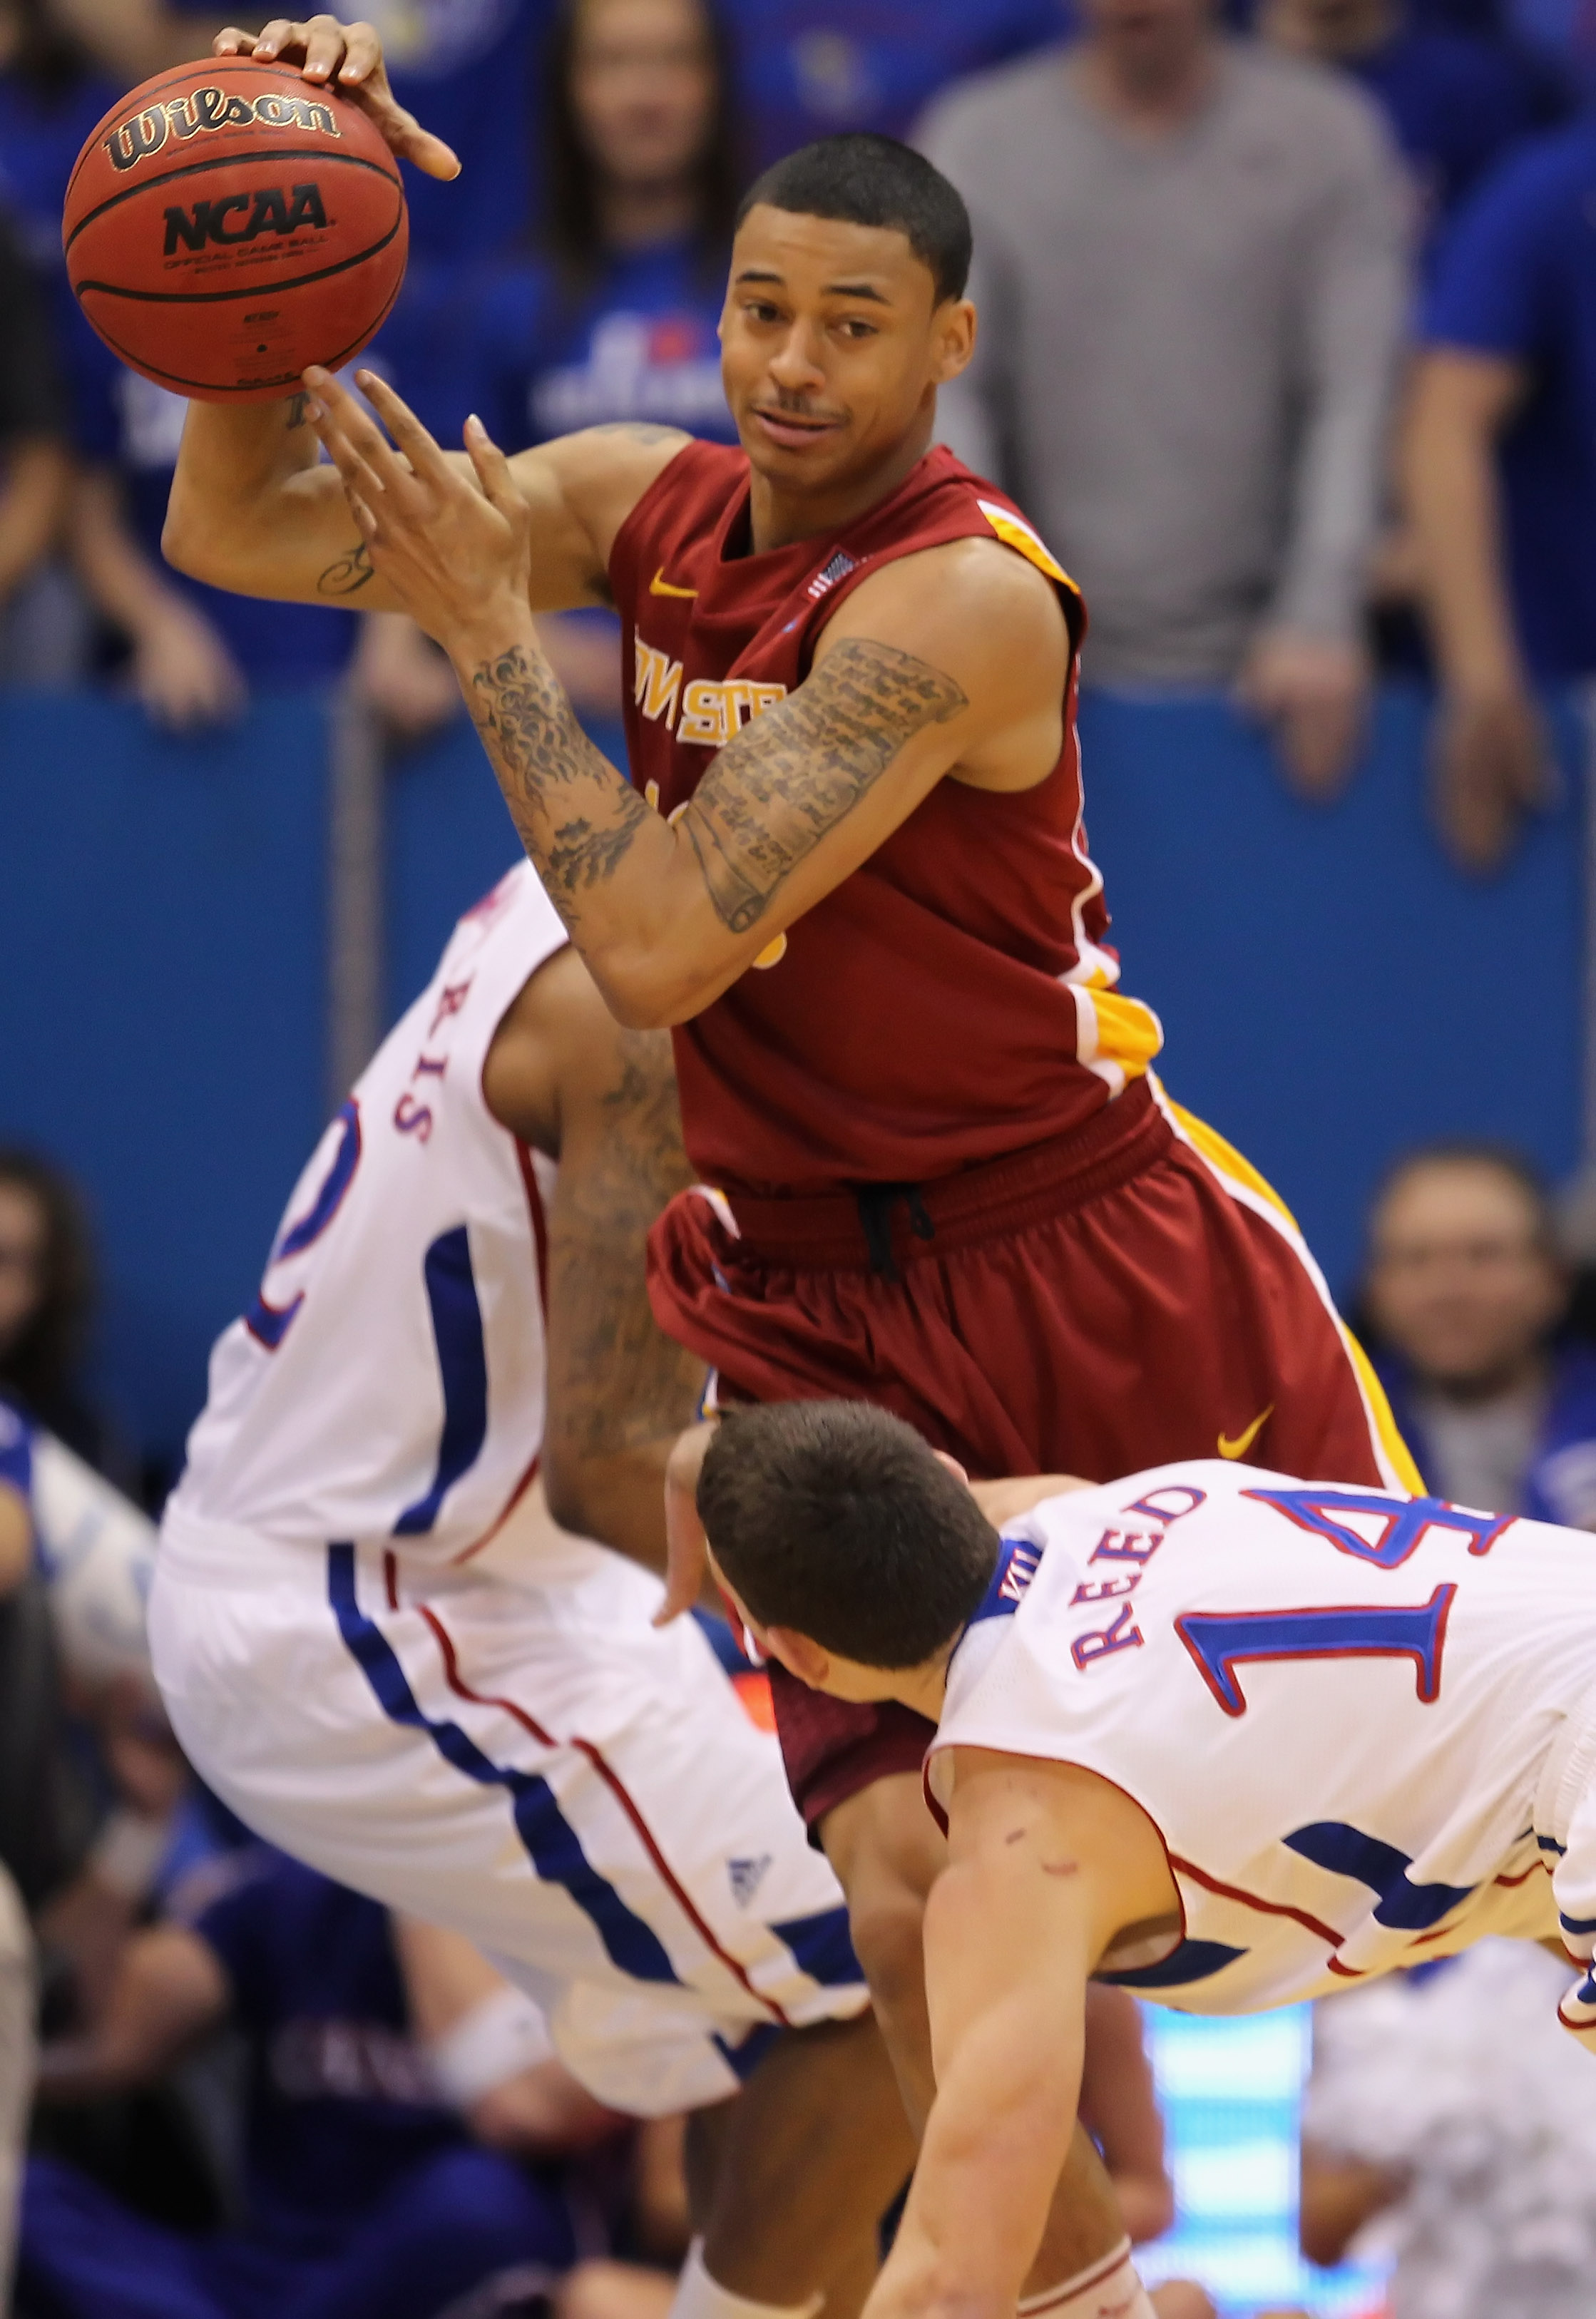 LAWRENCE, KS - FEBRUARY 12:  Diante Garrett #10 of the Iowa State Cyclones passes during the game against the Kansas Jayhawks on February 12, 2011 at Allen Fieldhouse in Lawrence, Kansas.  (Photo by Jamie Squire/Getty Images)